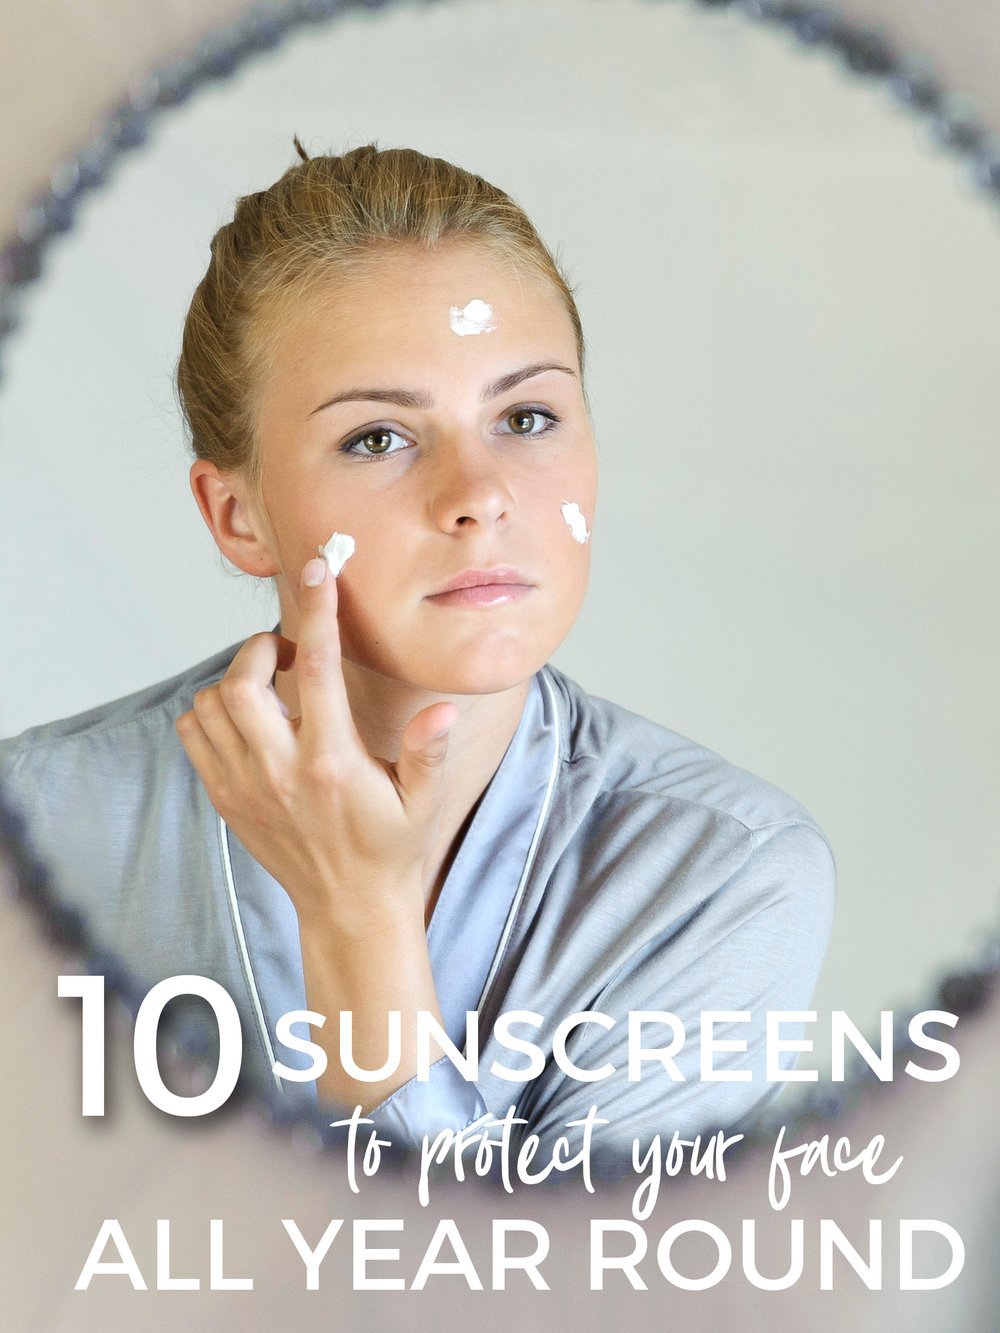 10 Sunscreens to Protect Your Face All Year Round